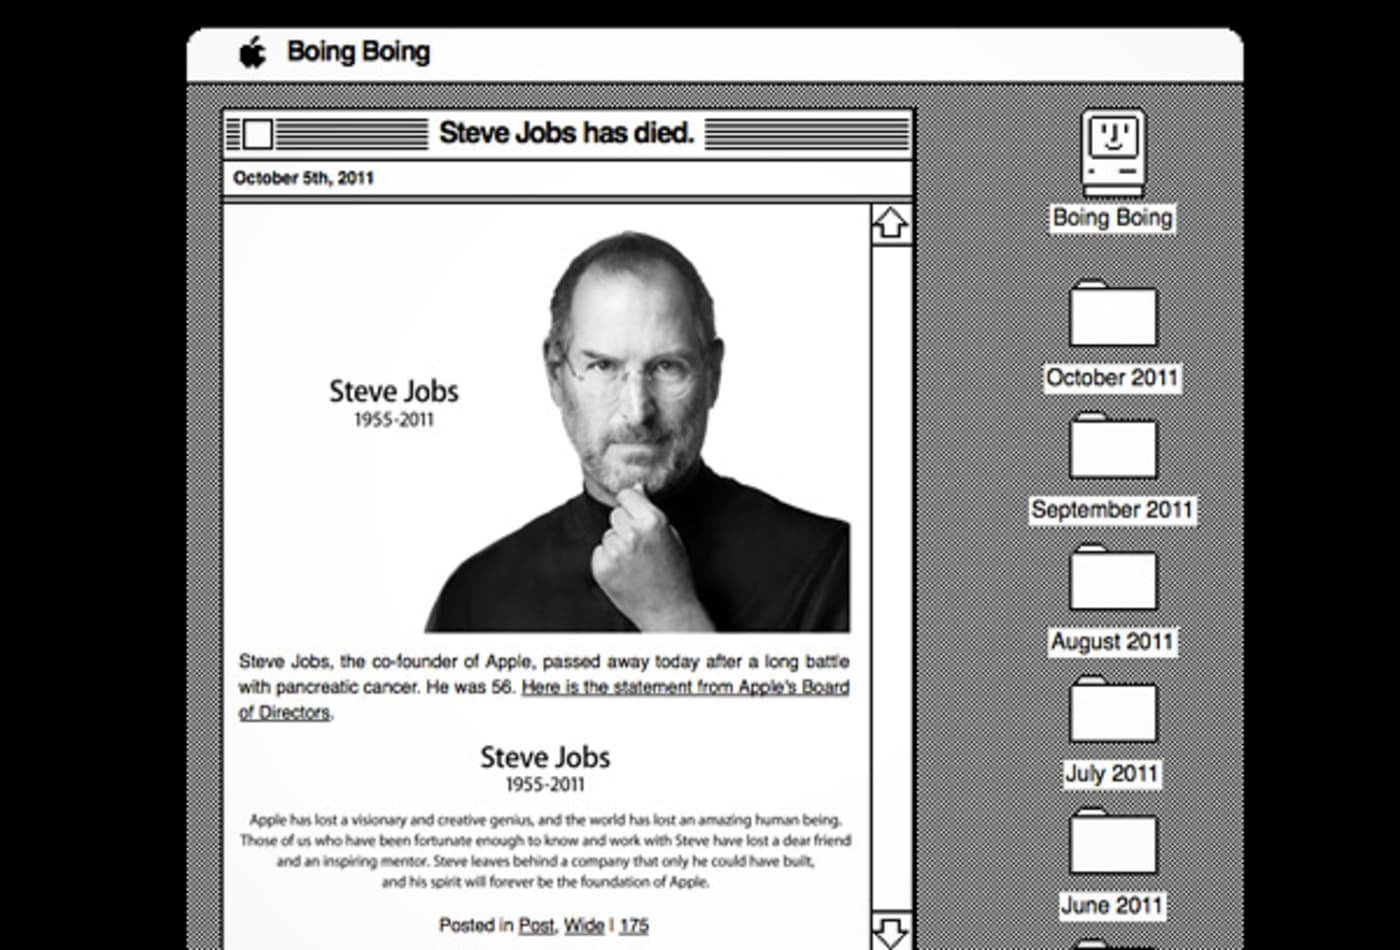 steve-jobs-passed-away-remembering-cnbc-6.jpg